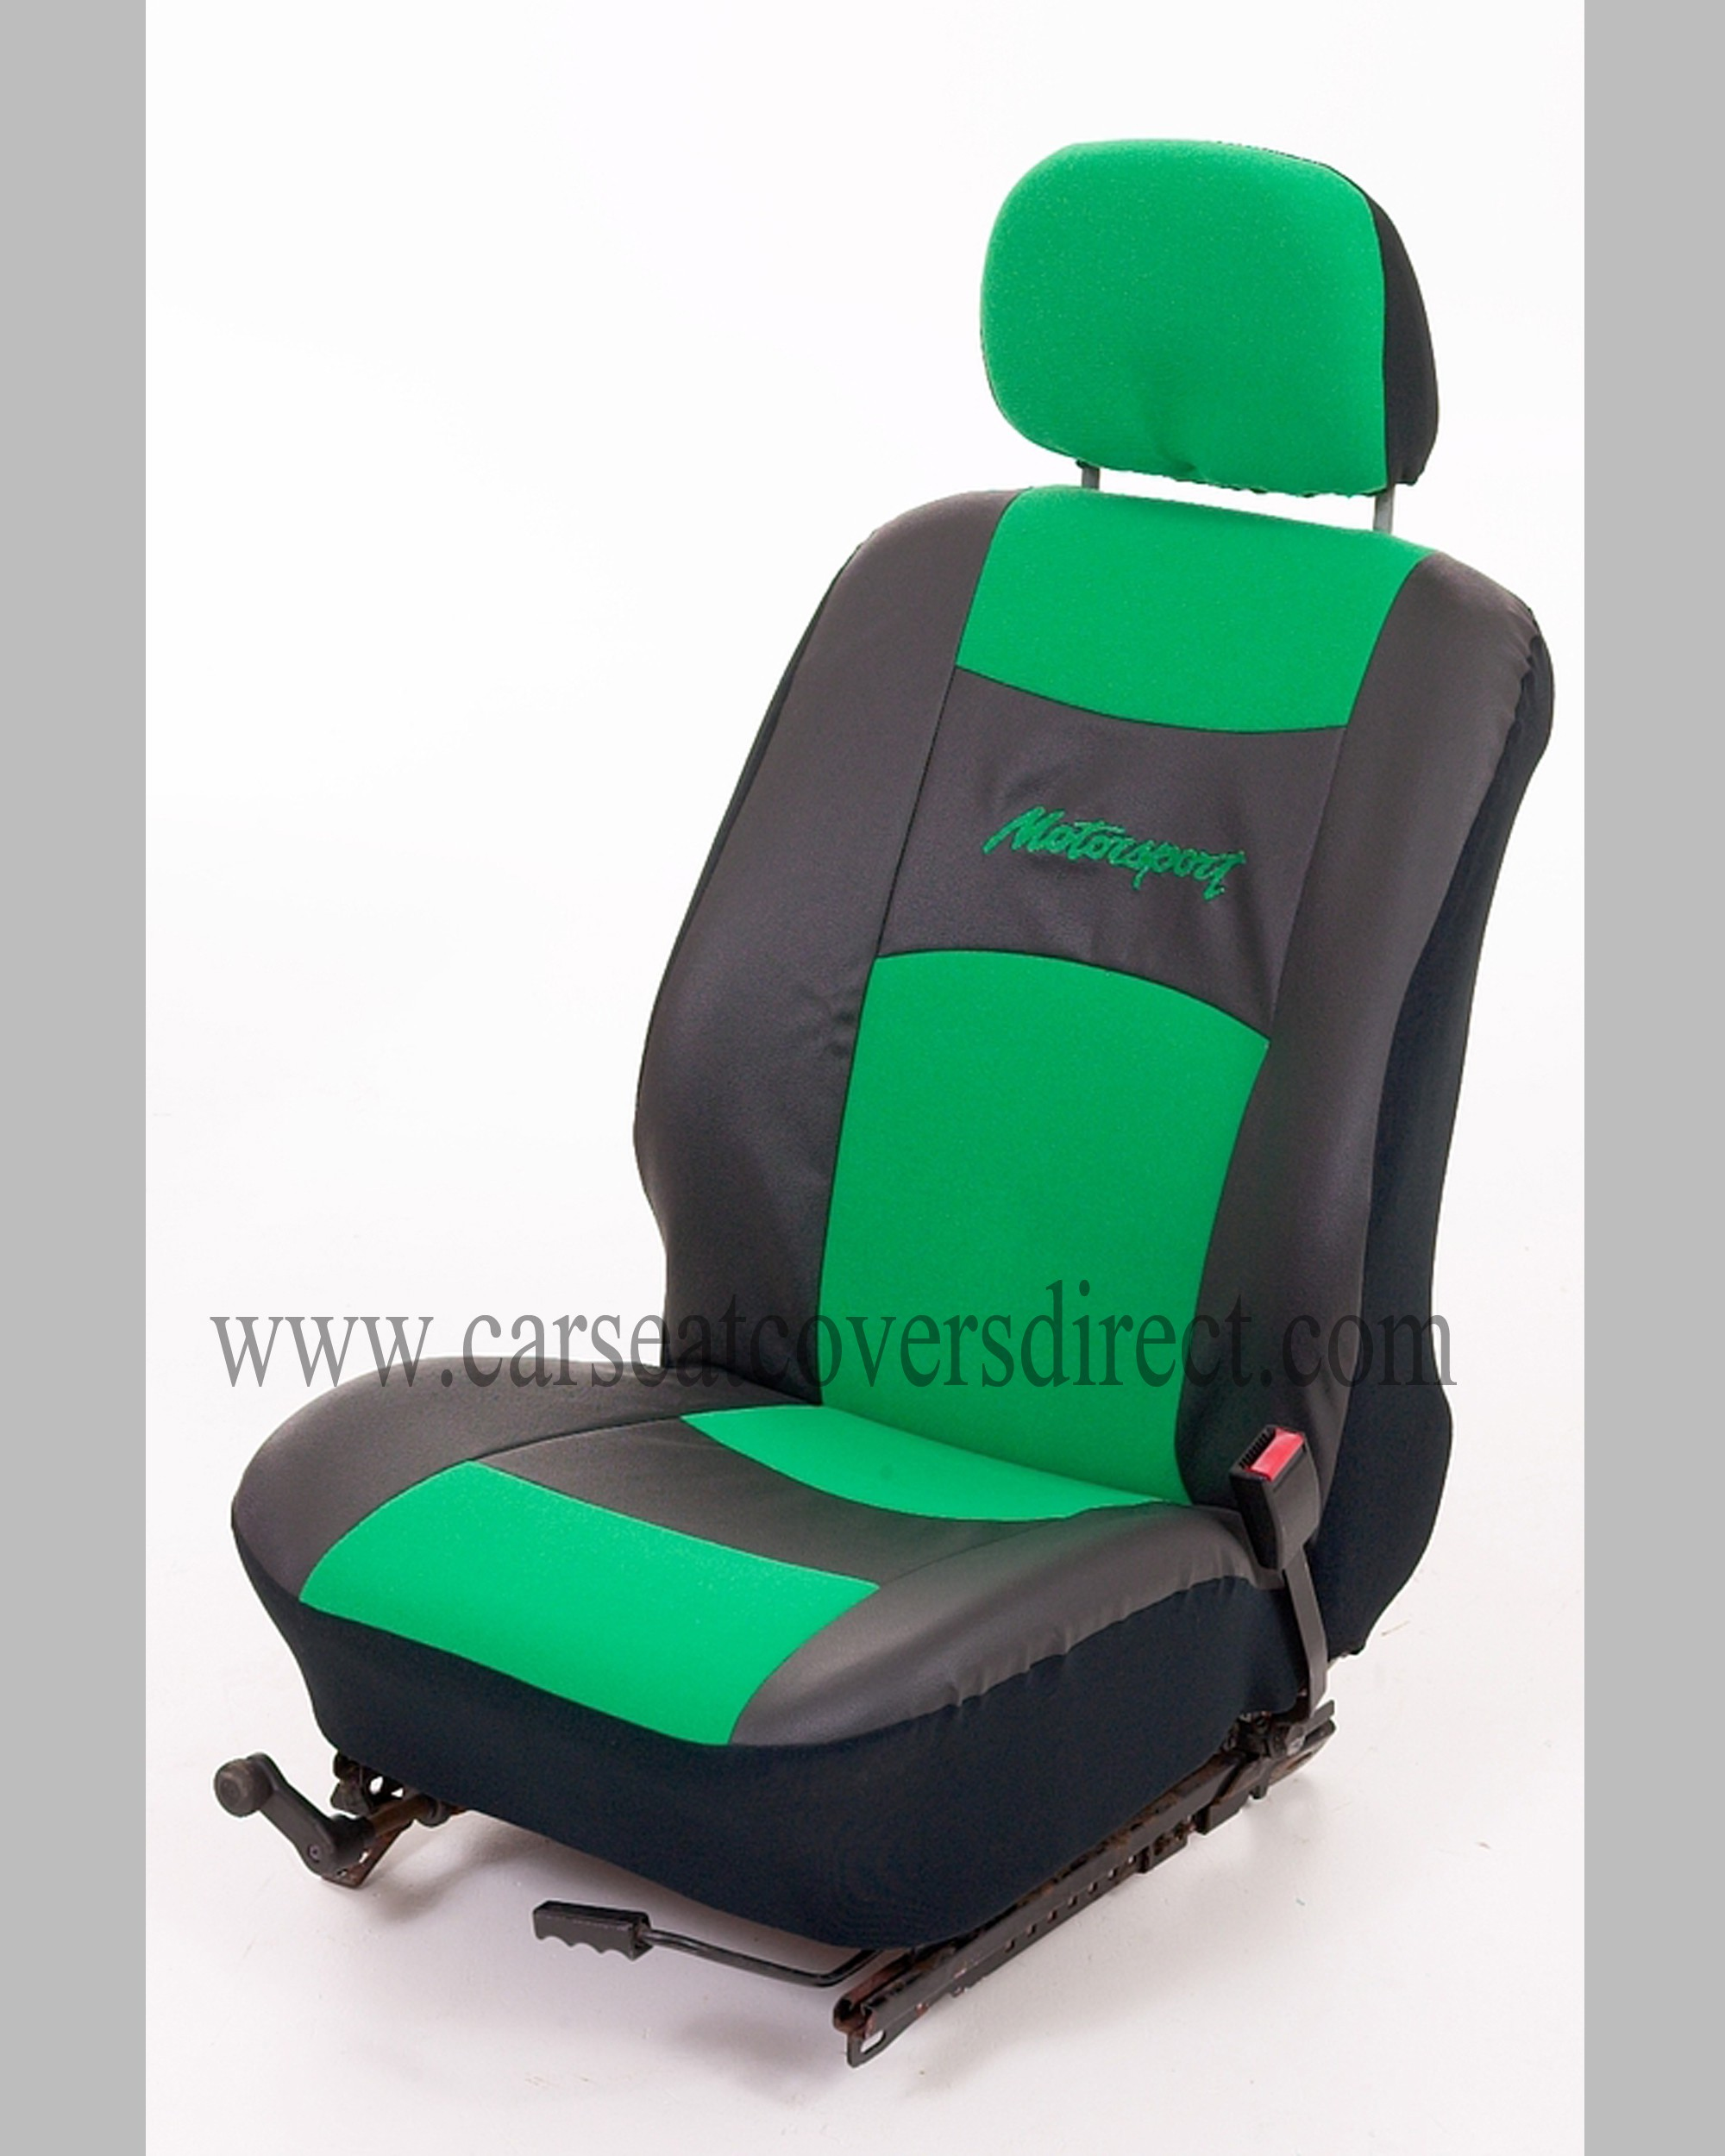 Motorsport UNIVERSAL Seat Covers Green Car Seat Covers